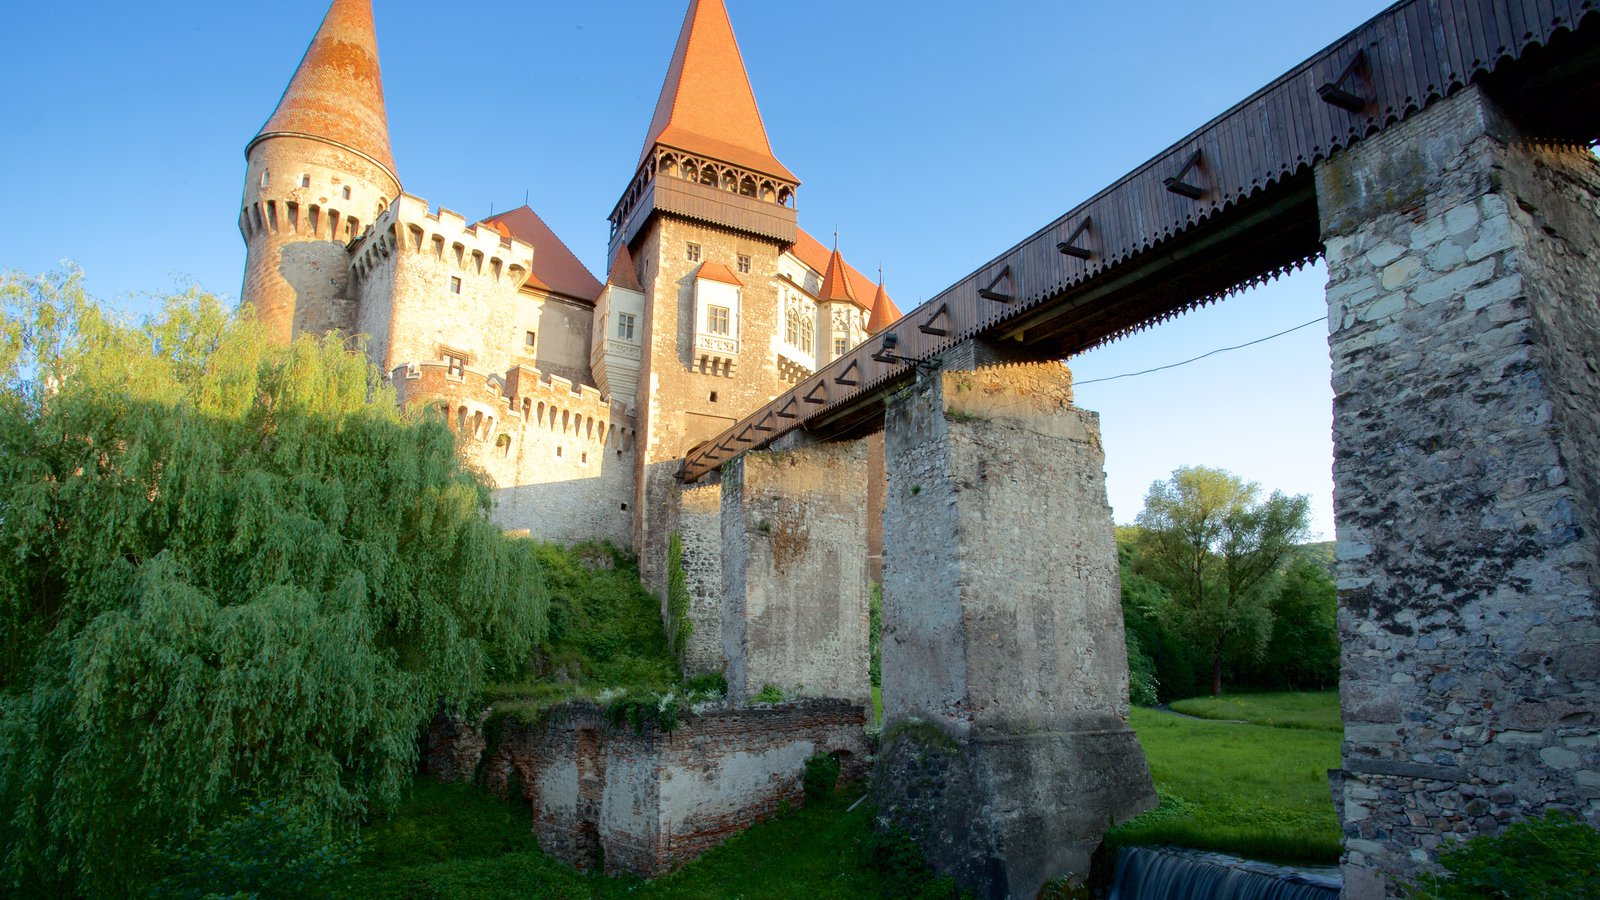 Hunedoara Castle showing a bridge, a sunset and chateau or palace